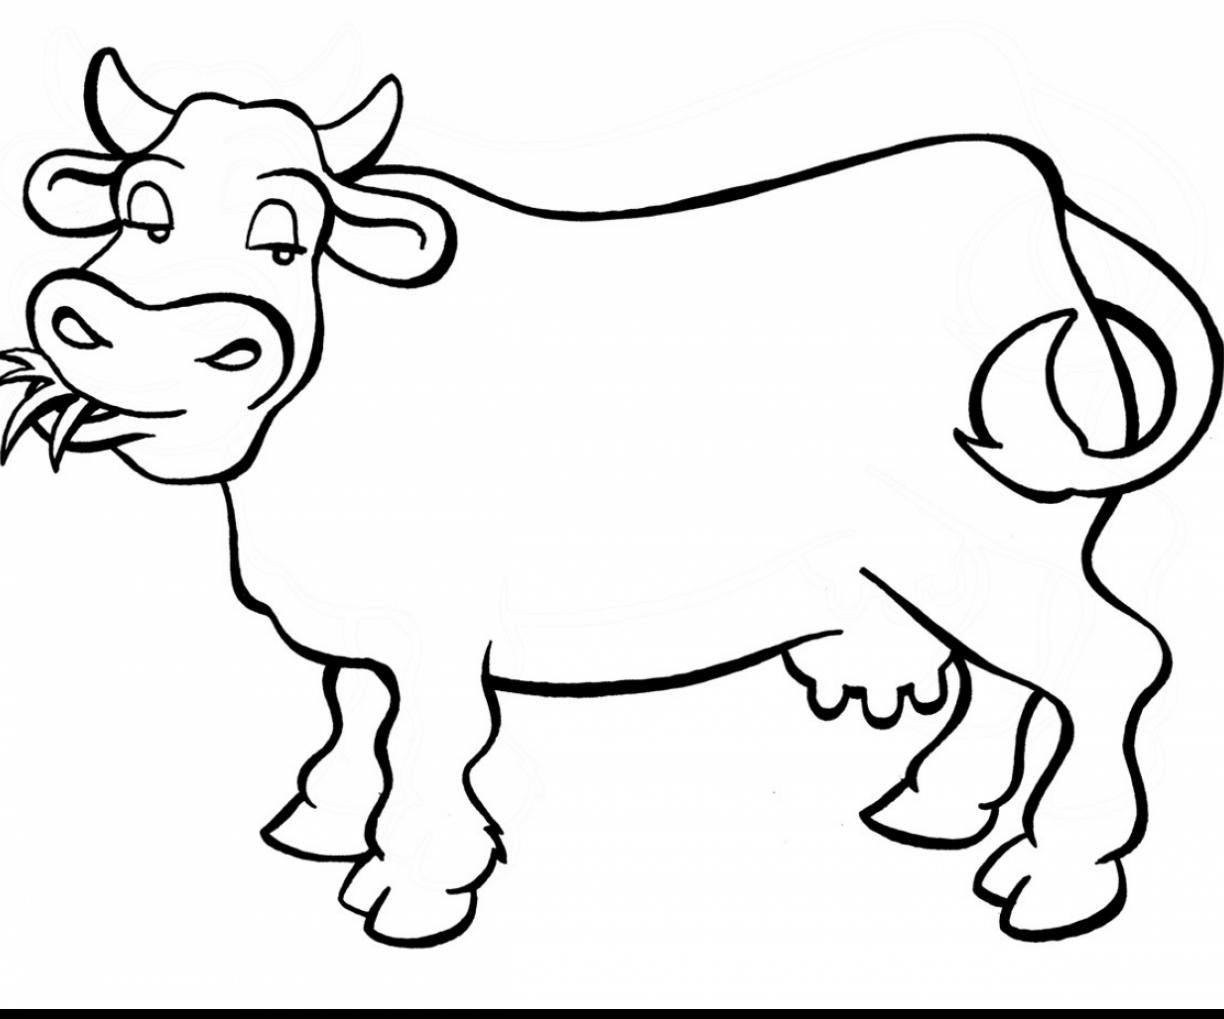 1224x1019 Cow Coloring Page Free Printable Impressive Pages For Kids Cowboy